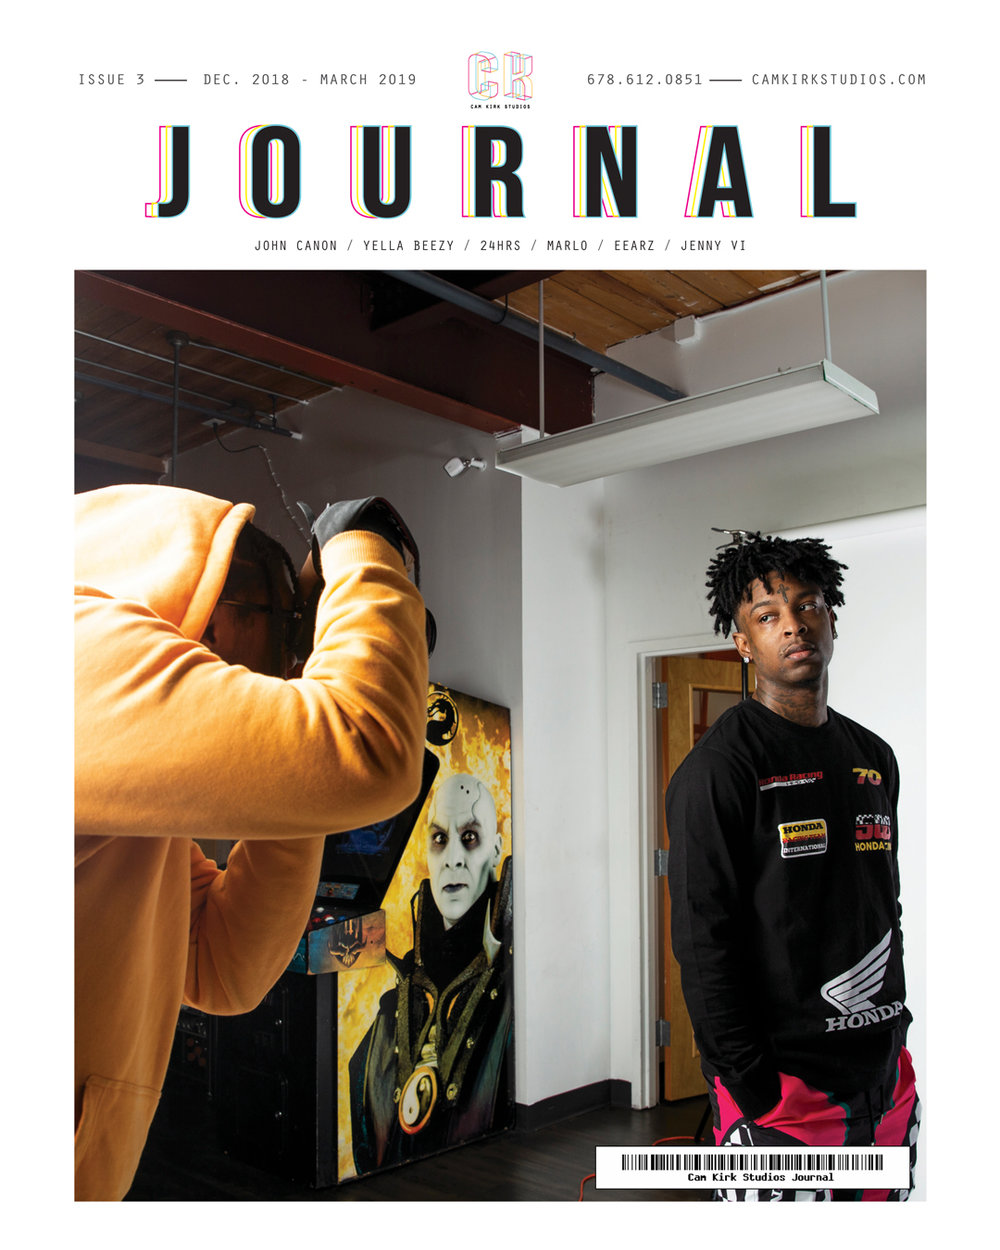 Issue #3 December-March 2019 feat. John Canon and 21 Savage